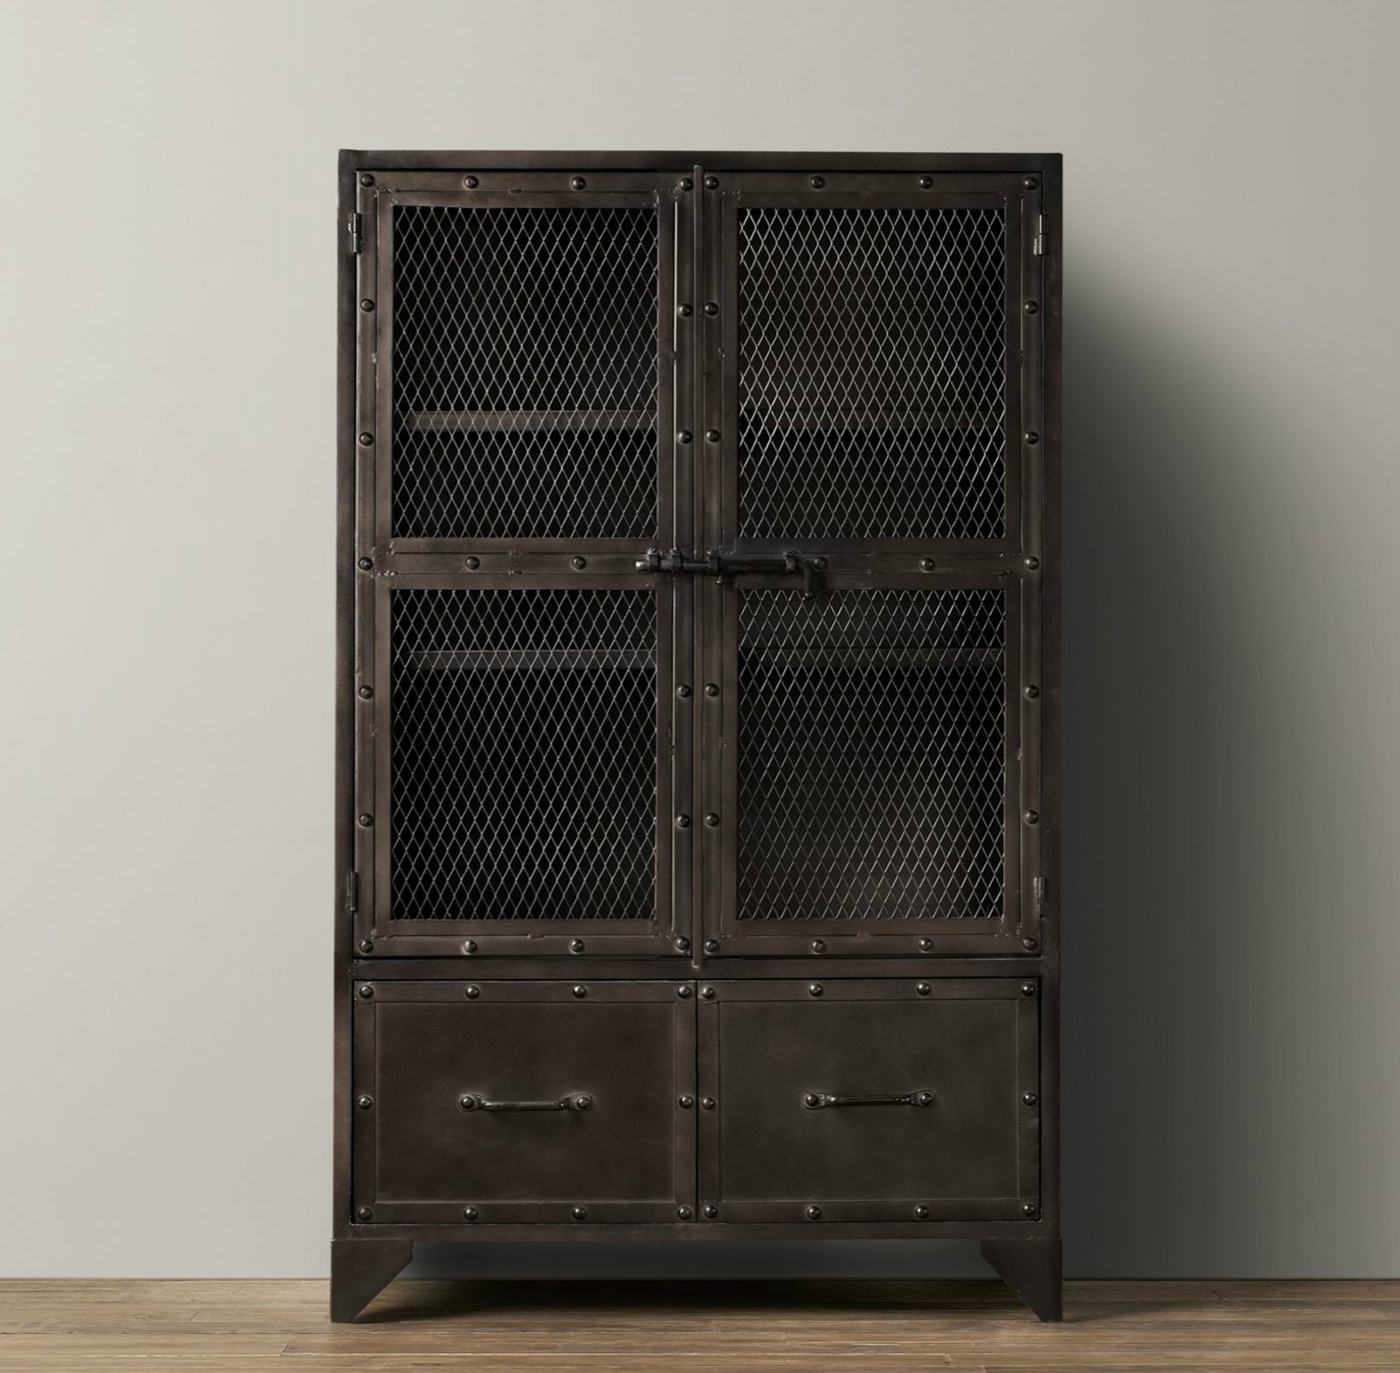 Ikea Kitchen Cabinet Child Locks Vintage Industrial Steel Cabinet By Rh Baby And Child On Behance